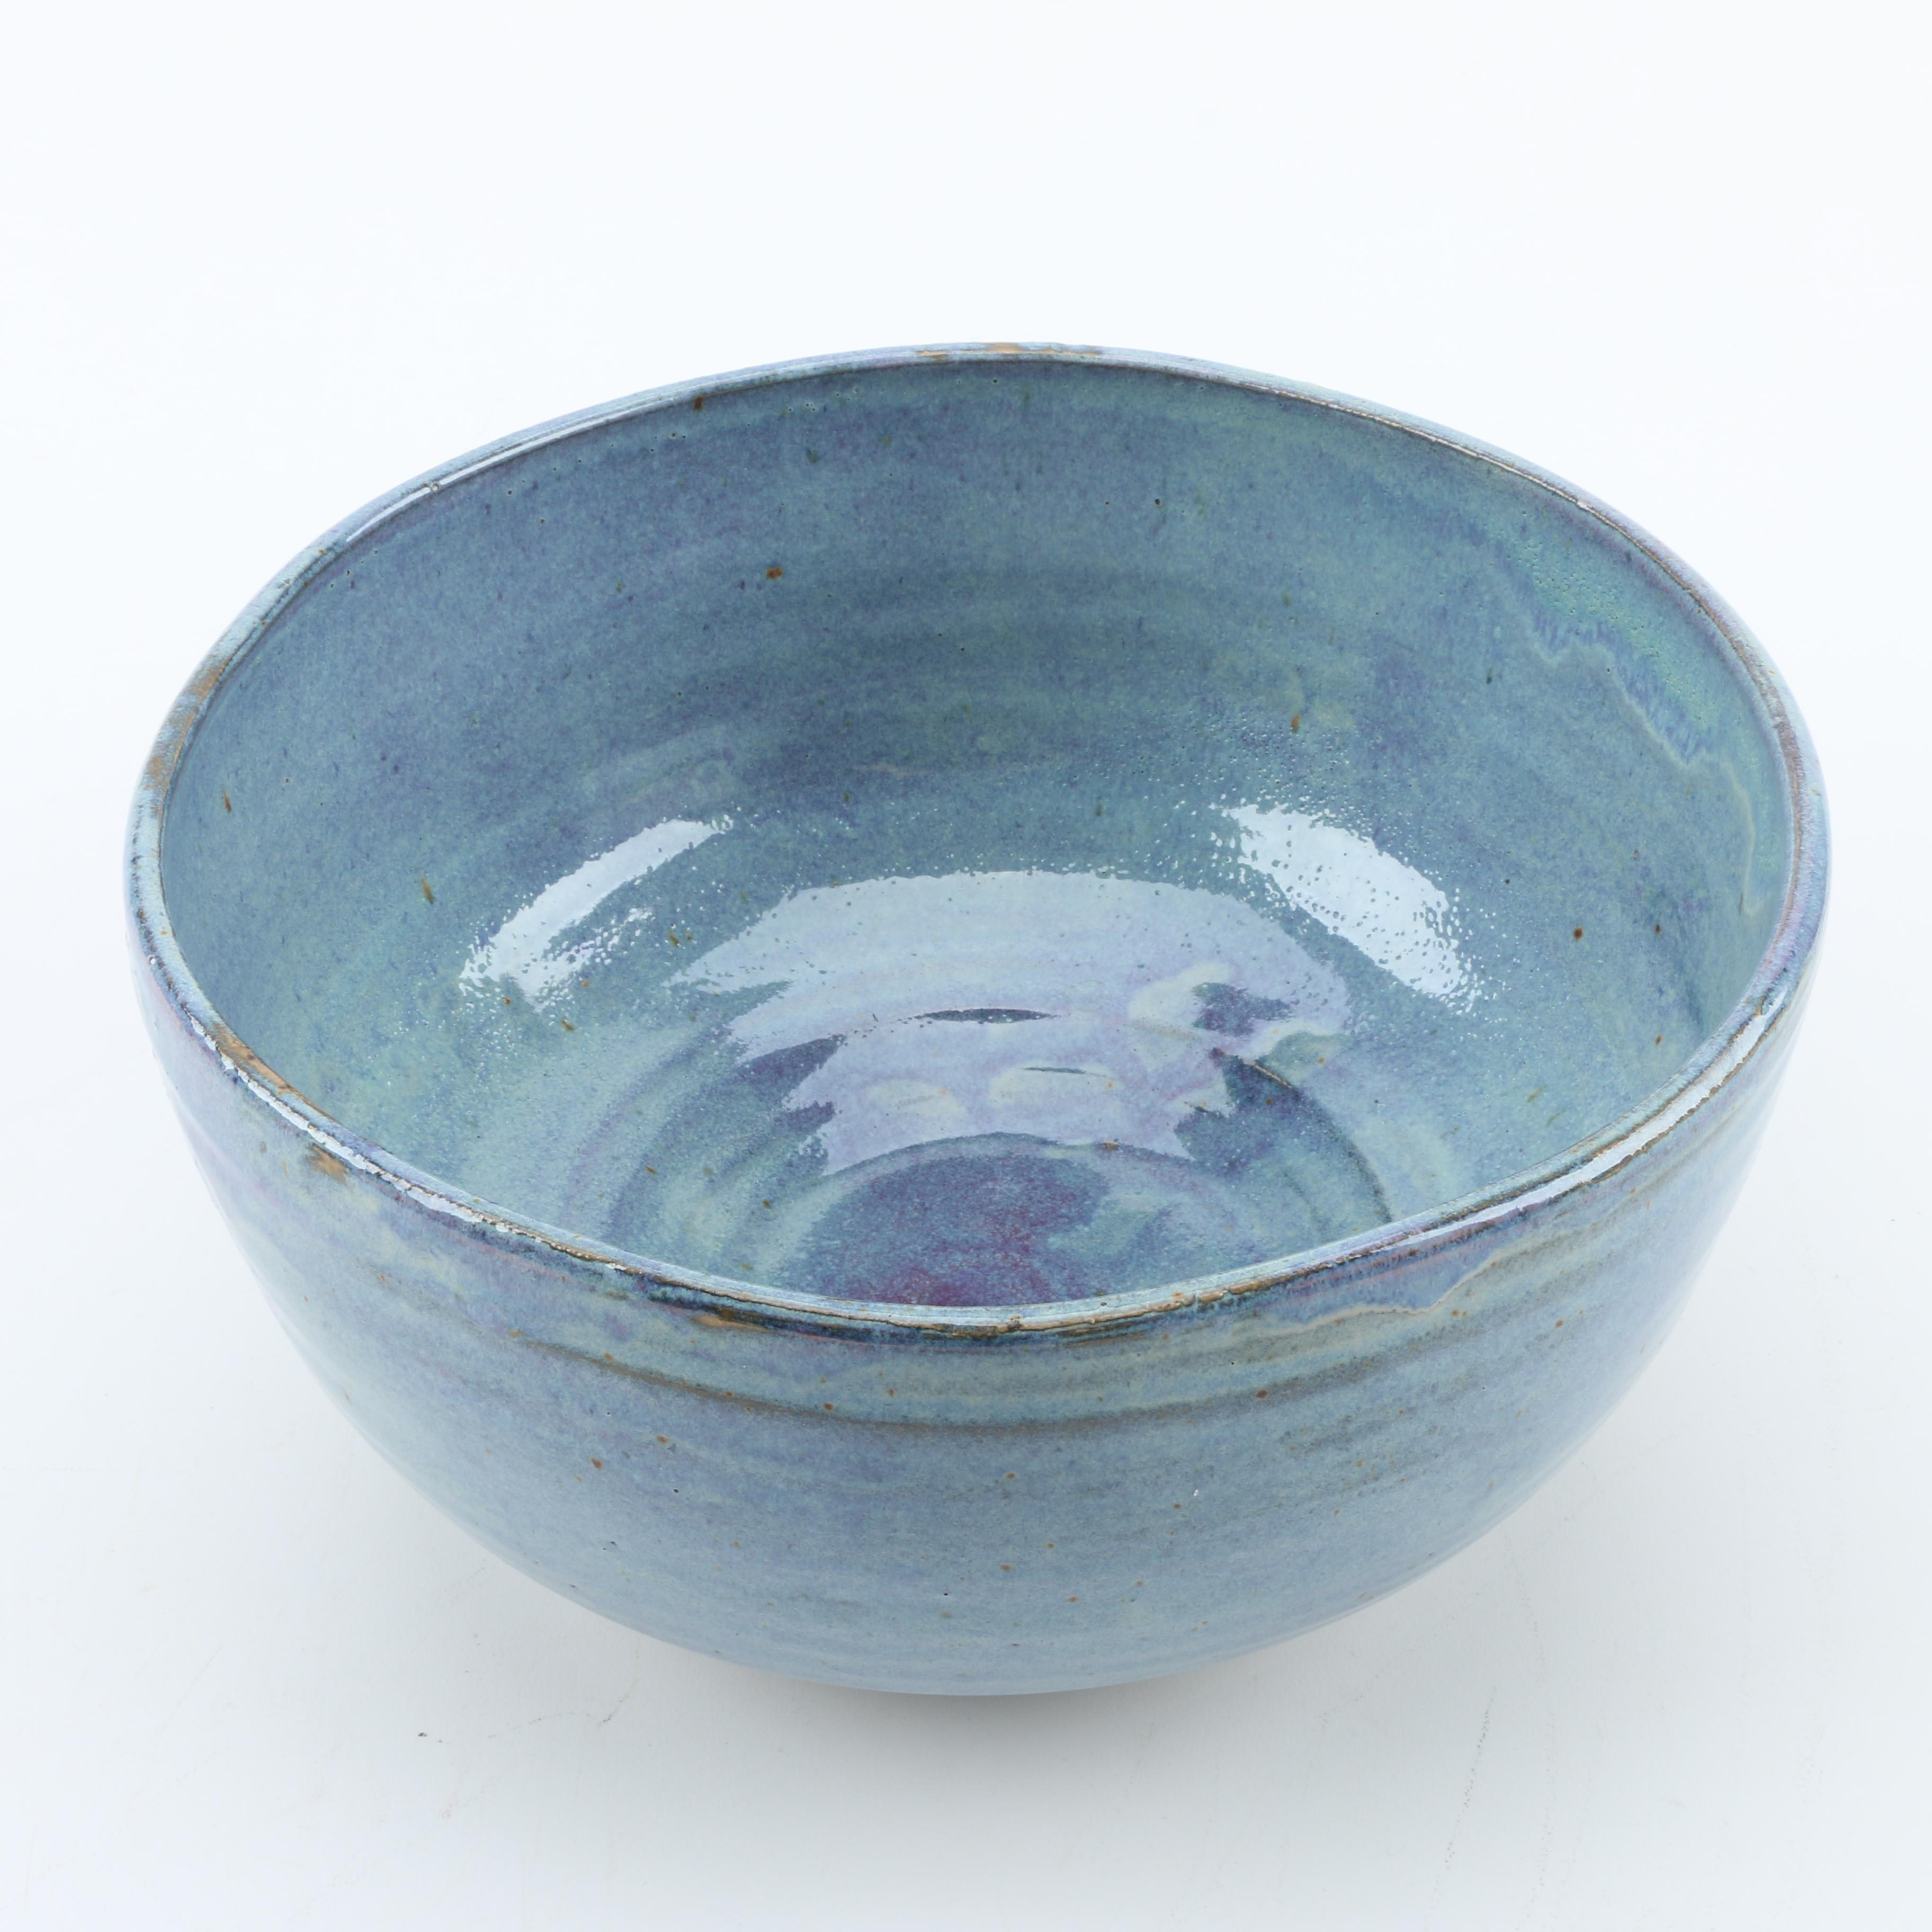 Chris Fiedler Hand Thrown Stoneware Bowl